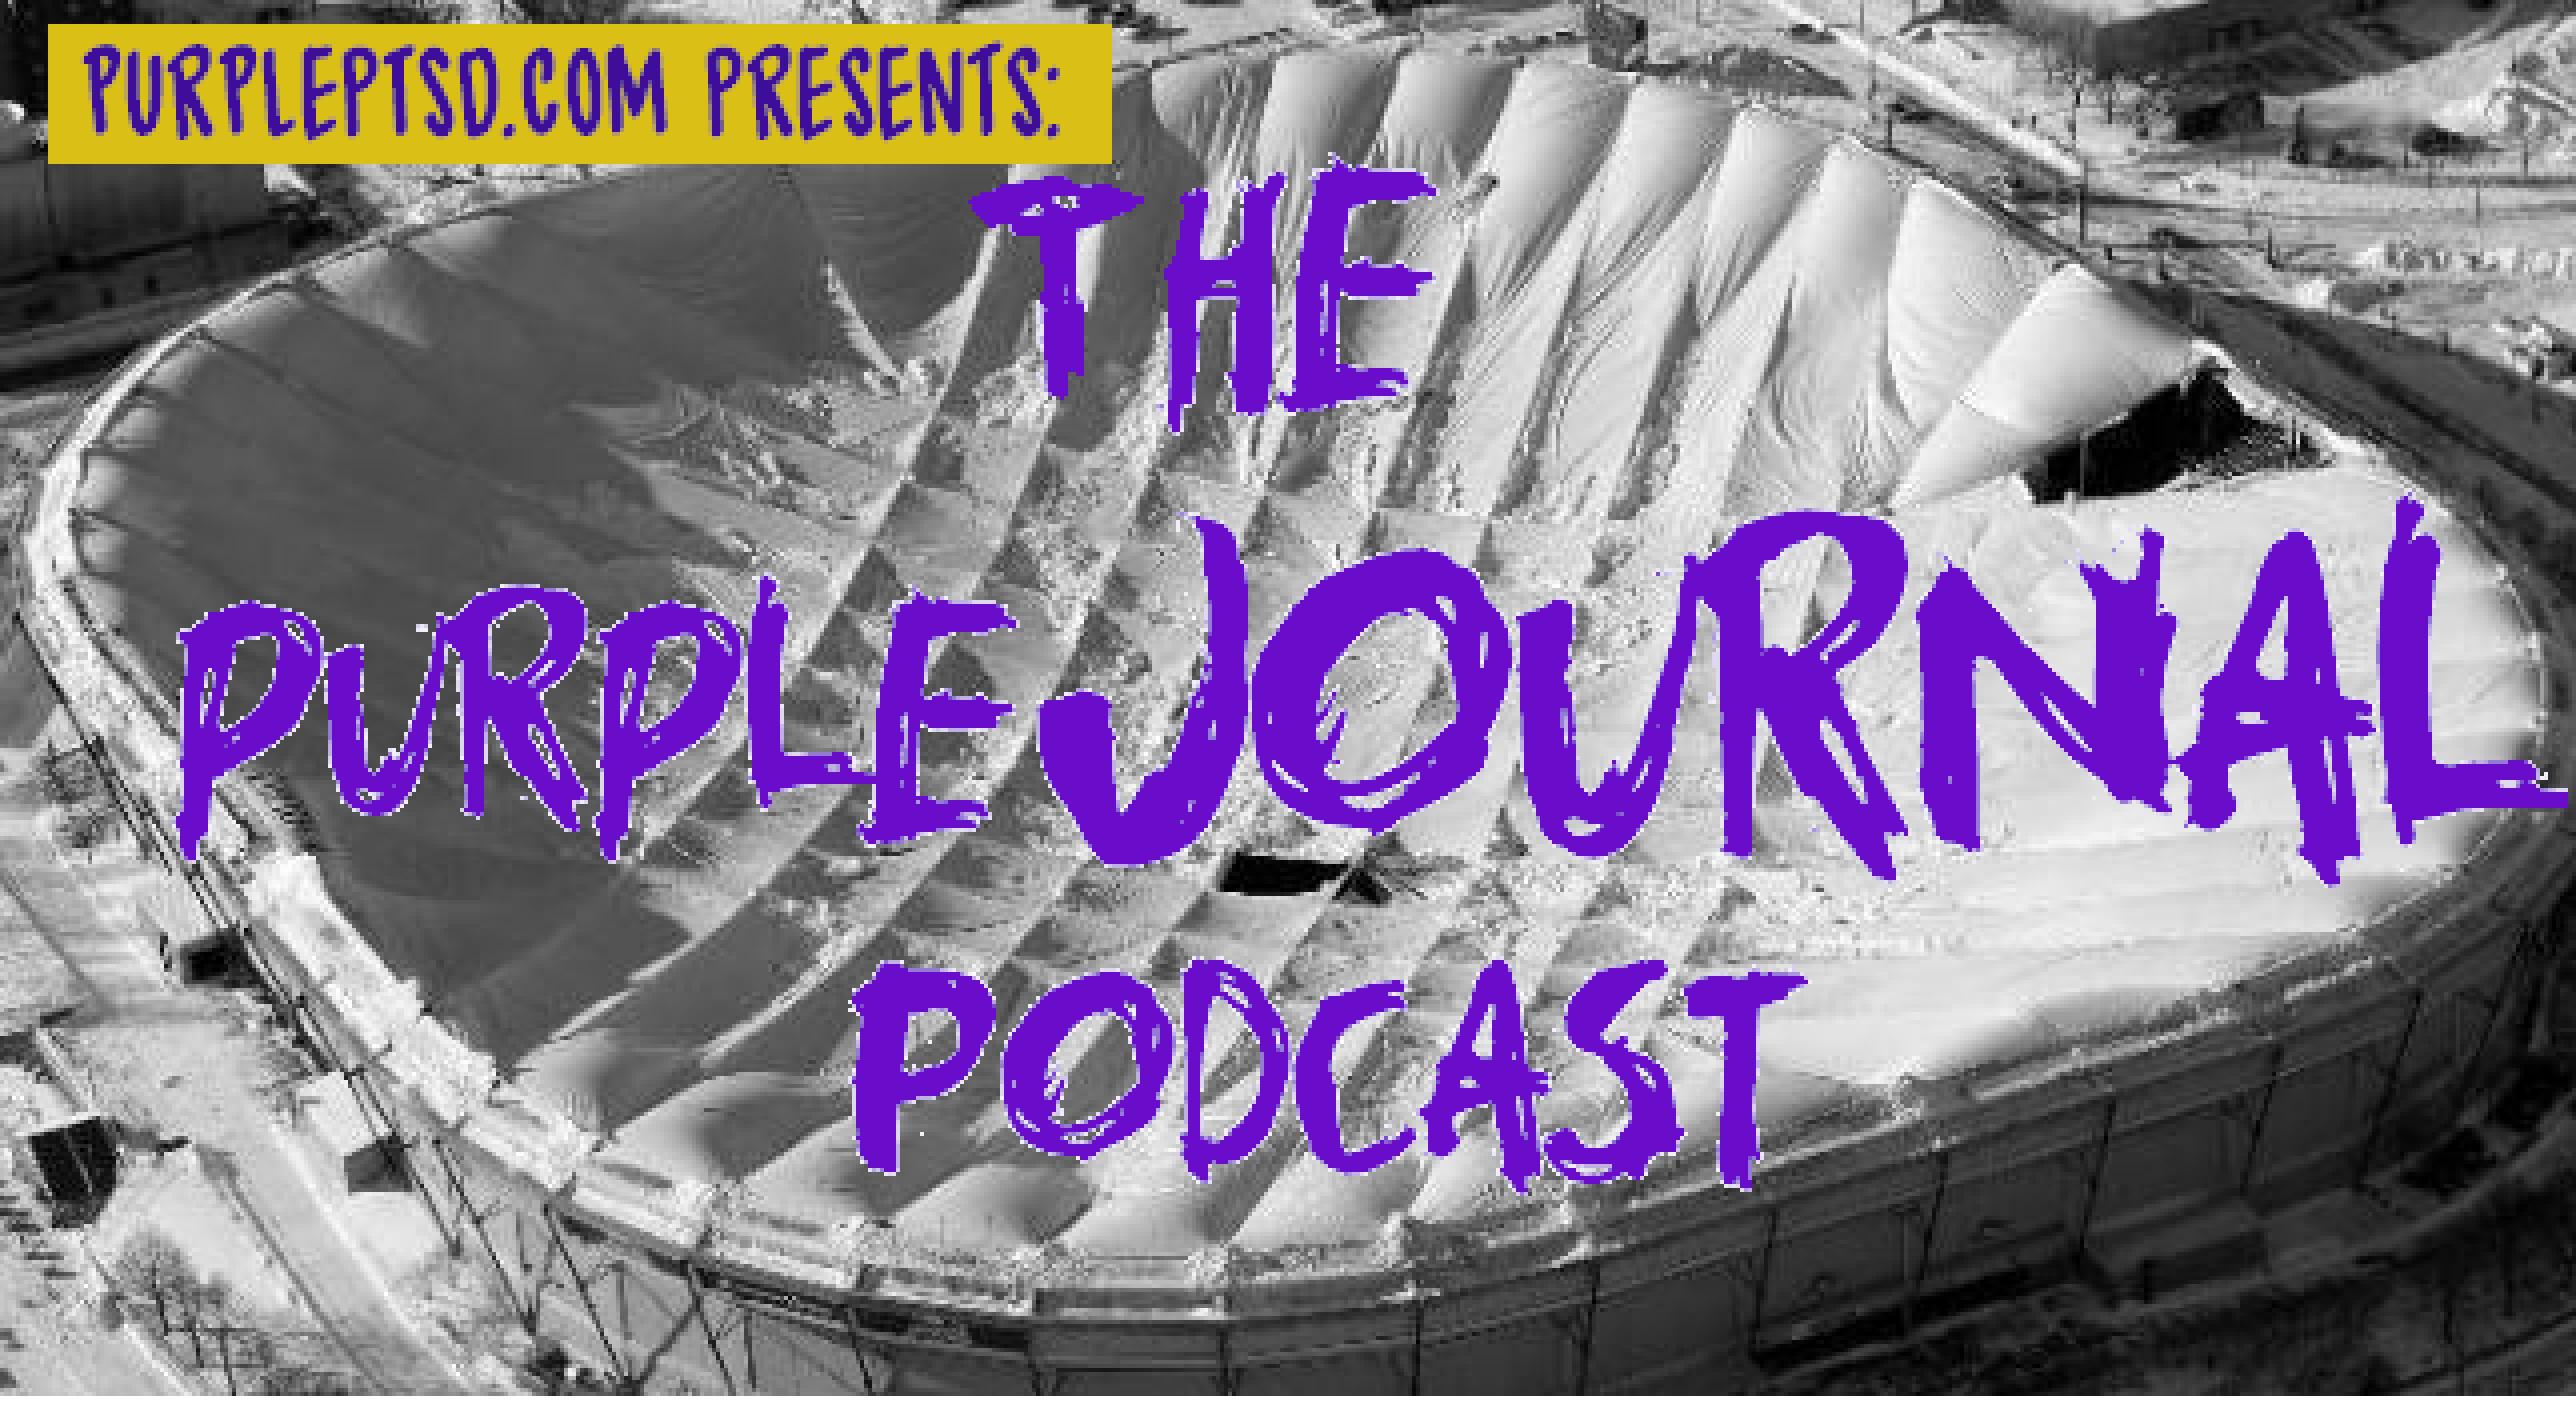 The purpleJOURNAL Podcast - The 'We Have Sponsors Now' Edition [Jags/Broncos thoughts, News, More...]